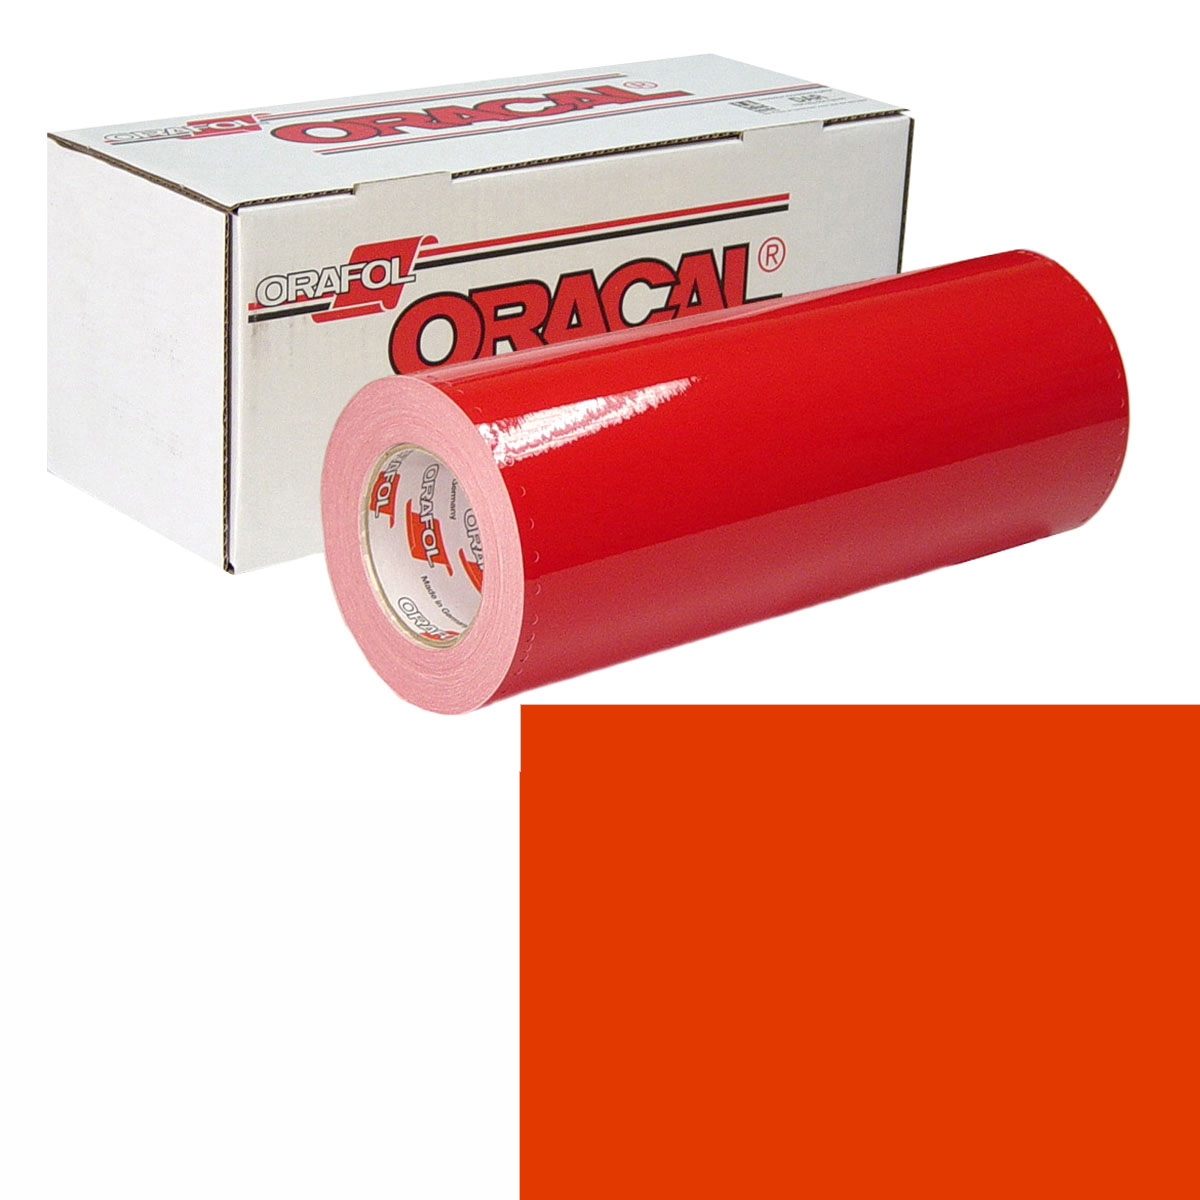 ORACAL 951 15In X 50Yd 335 Mars Red